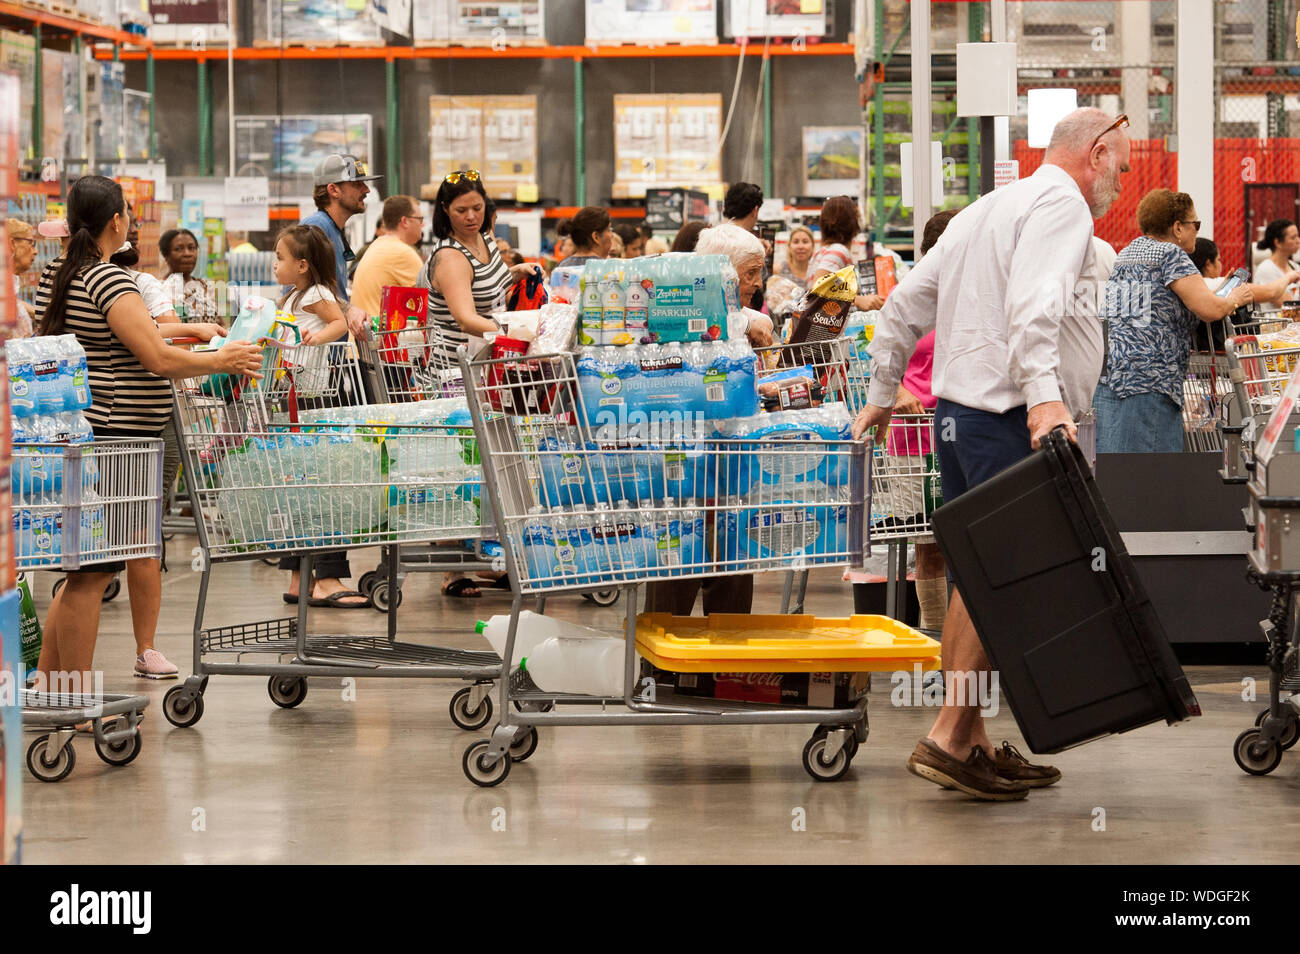 August 29, 2019, Fort Lauderdale, Florida, U.S: Residents of Florida stock up with groceries and water in preperation for hurricane Dorian, in Fort Lauderdale, Fla. Florida Governor, Ron Desantis, declared a state of emergency for 26 counties in Florida, as Hurricane is forecast to hit Florida as a major category 3 hurricane (Credit Image: © Orit Ben-Ezzer/ZUMA Wire) Stock Photo